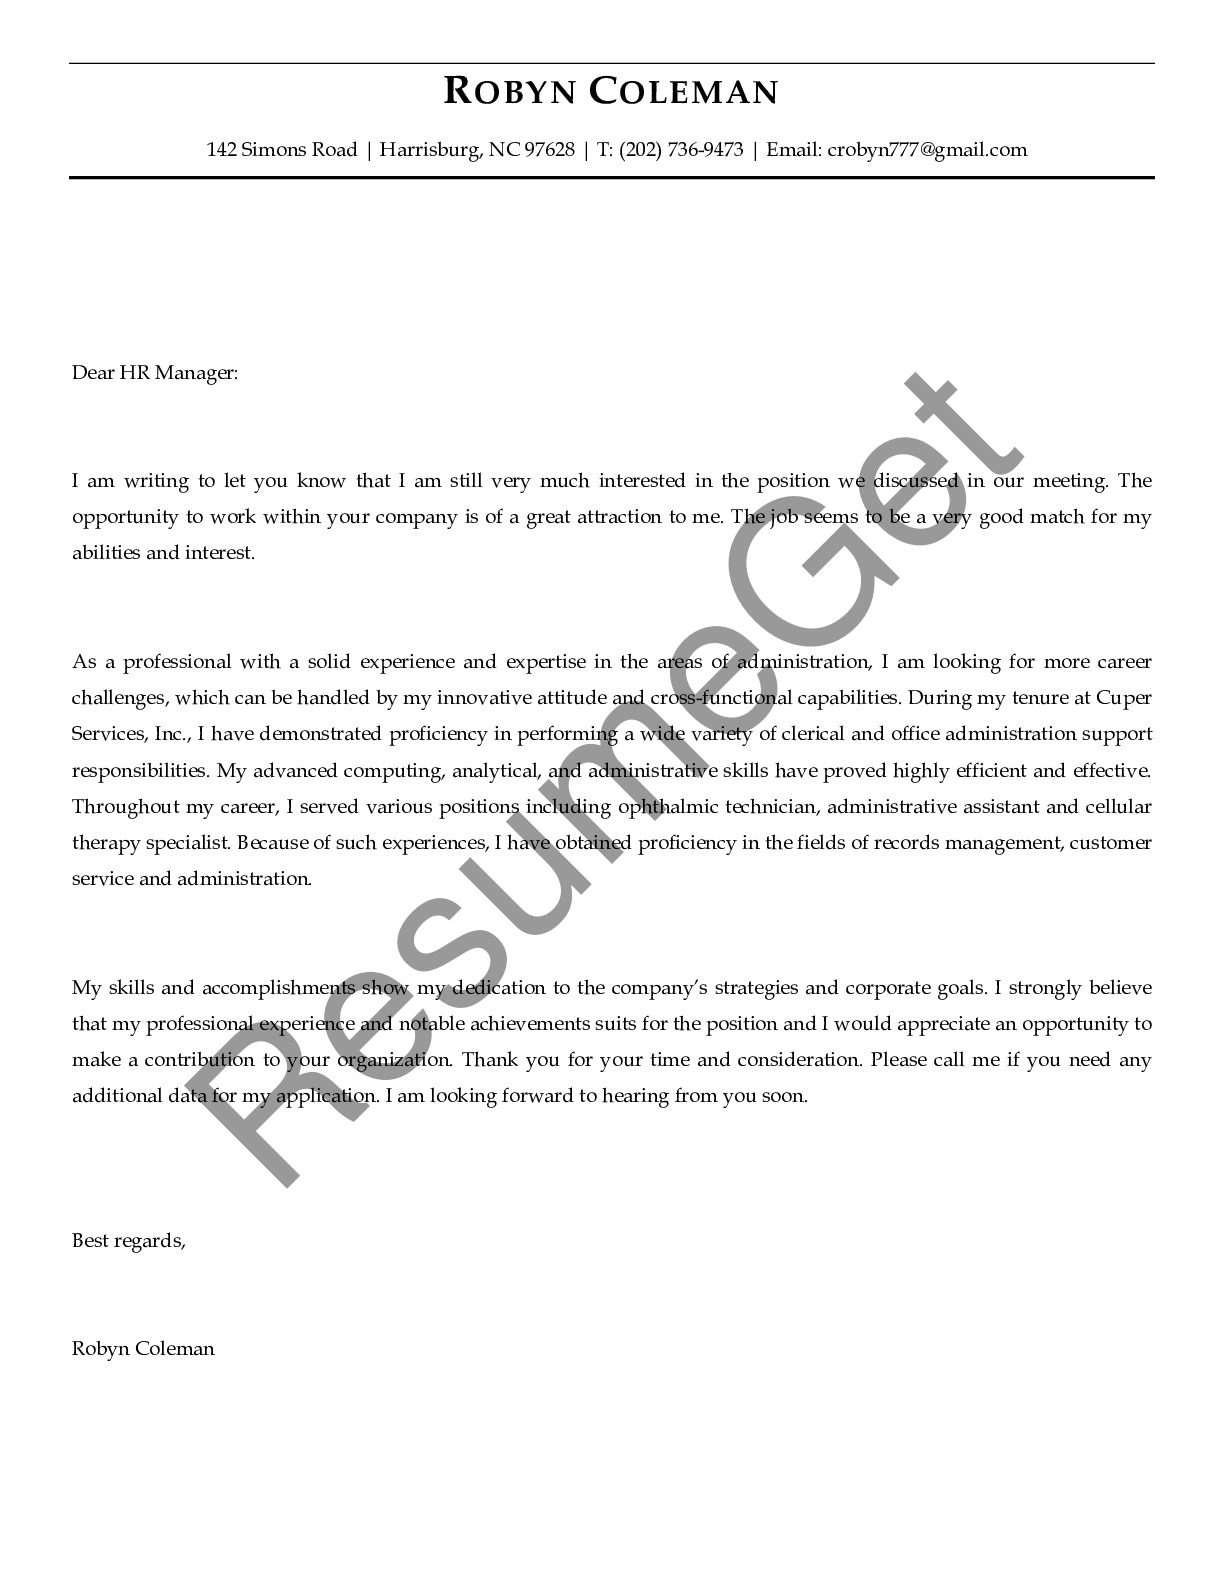 Follow Up Letter for Administrative Assistance